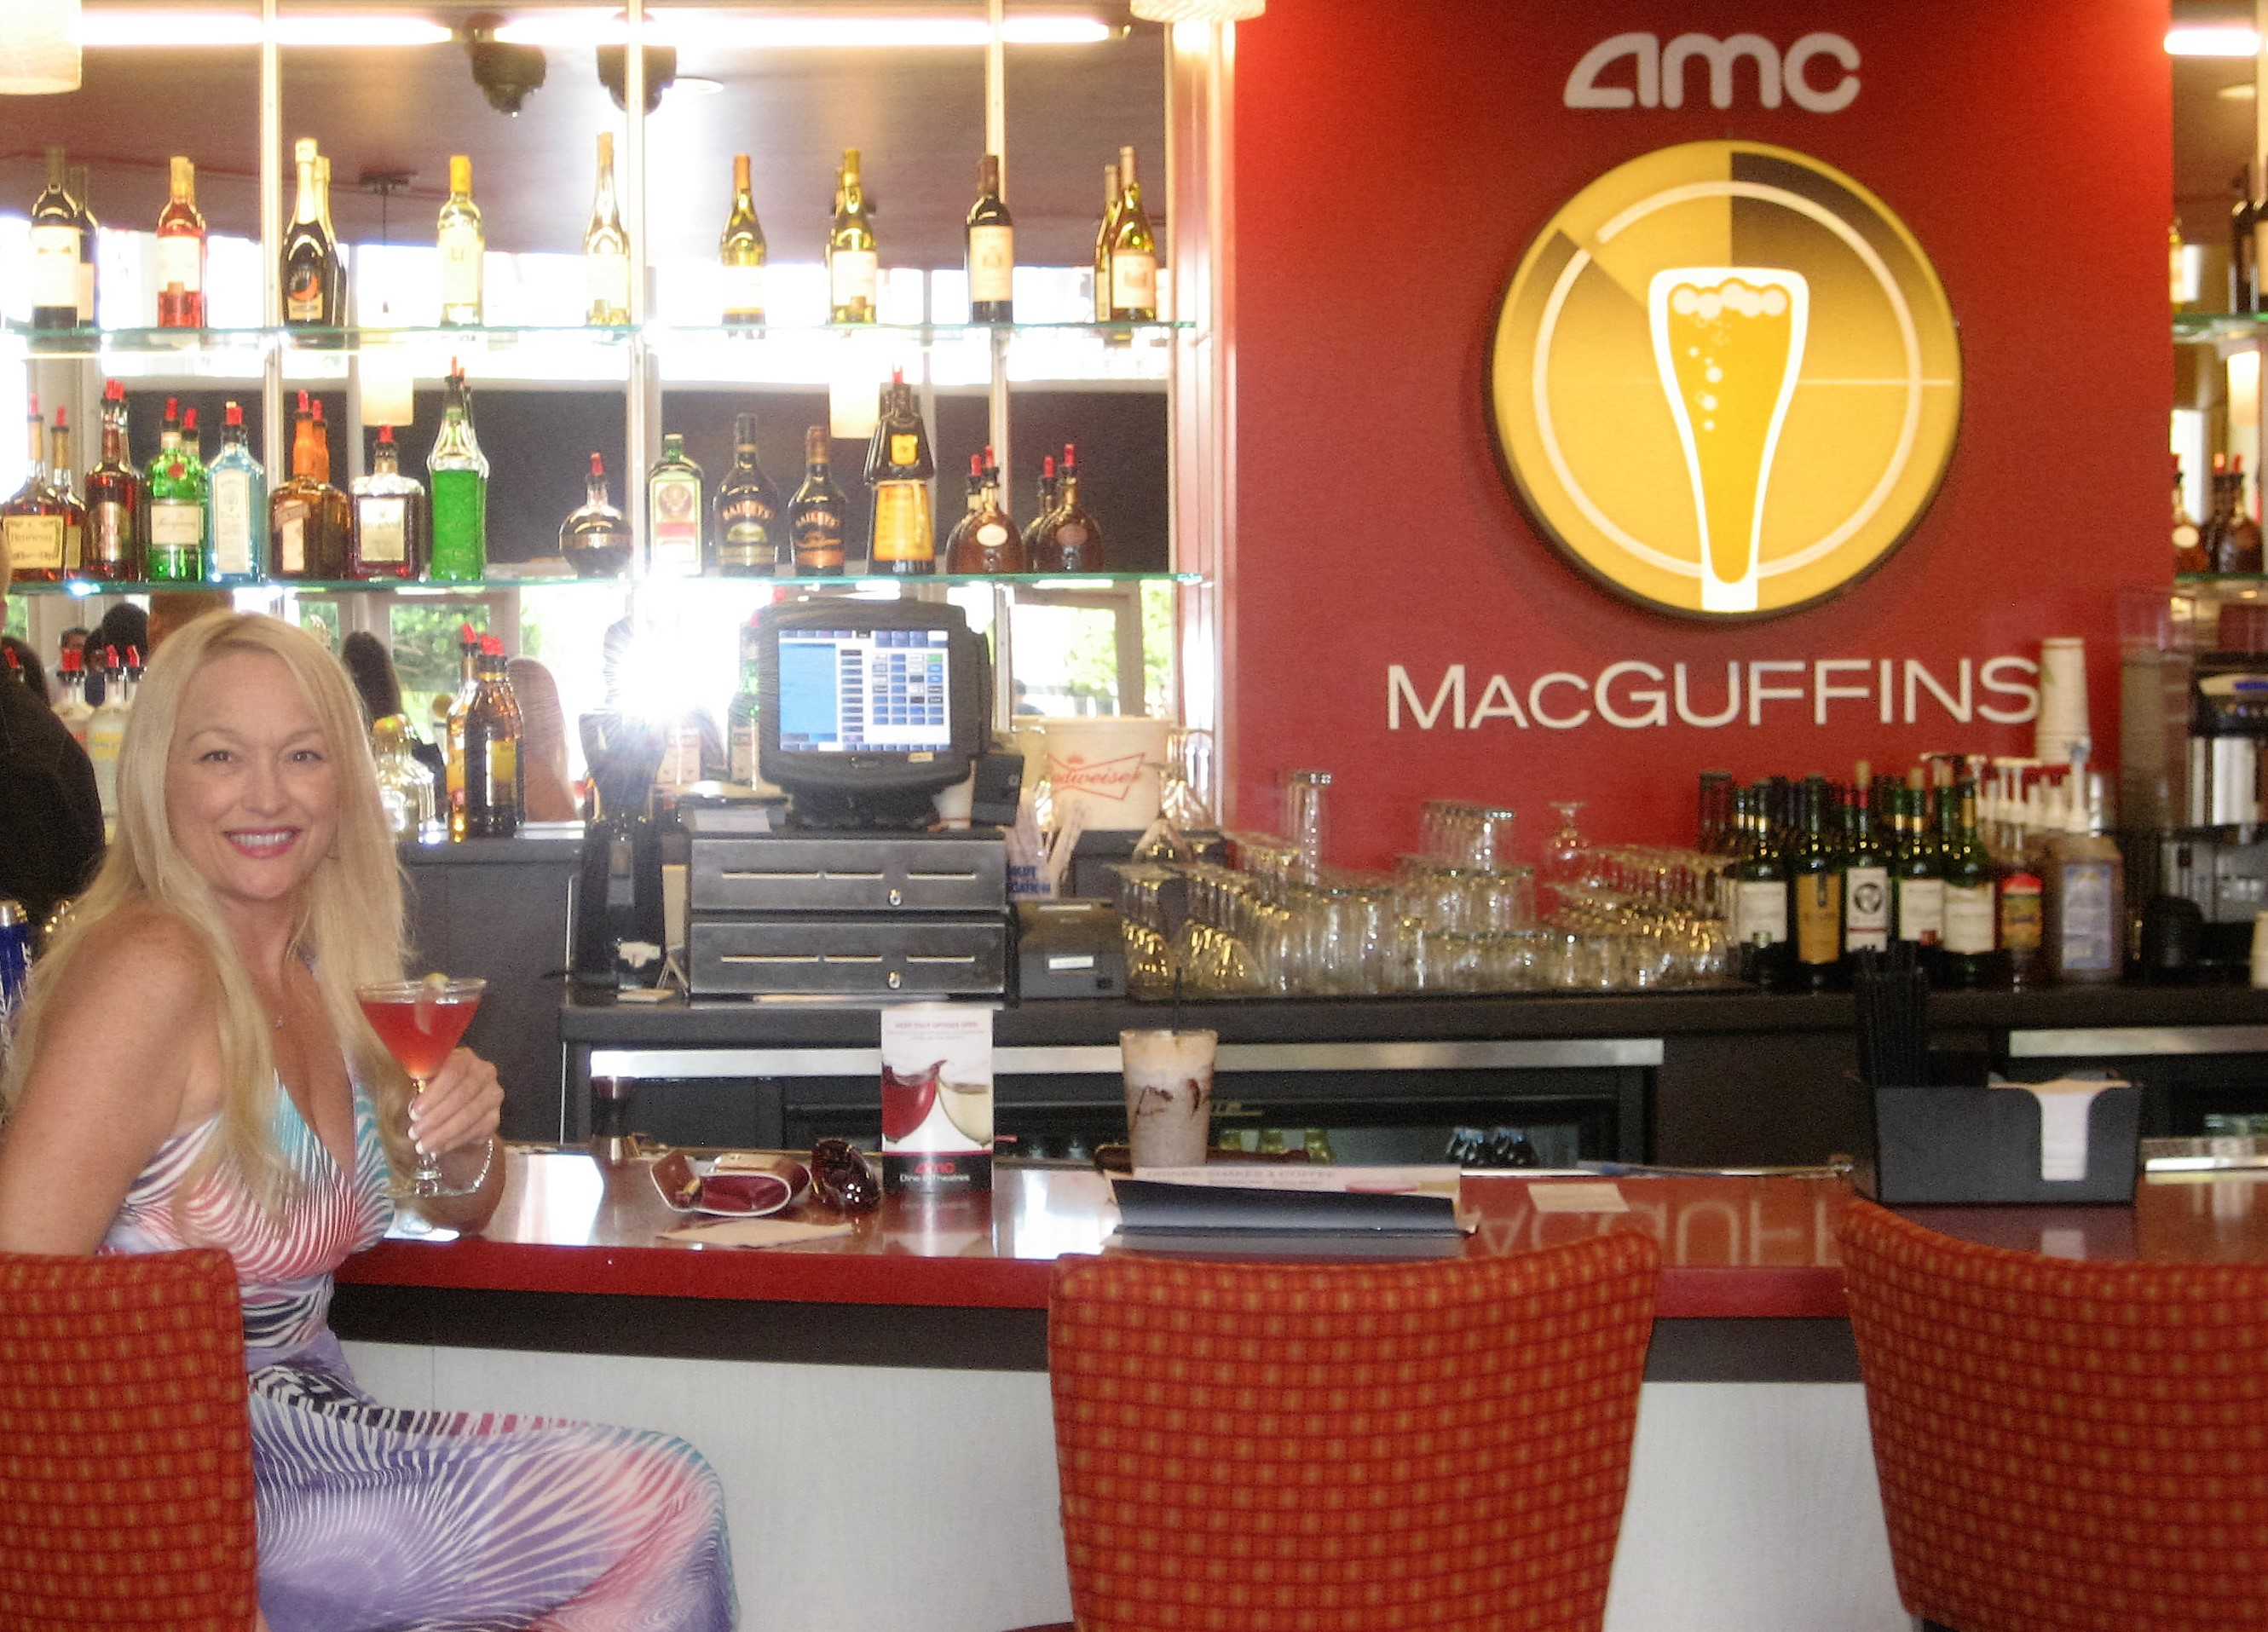 AMC Disney Springs 24 with Dine-in Theatres